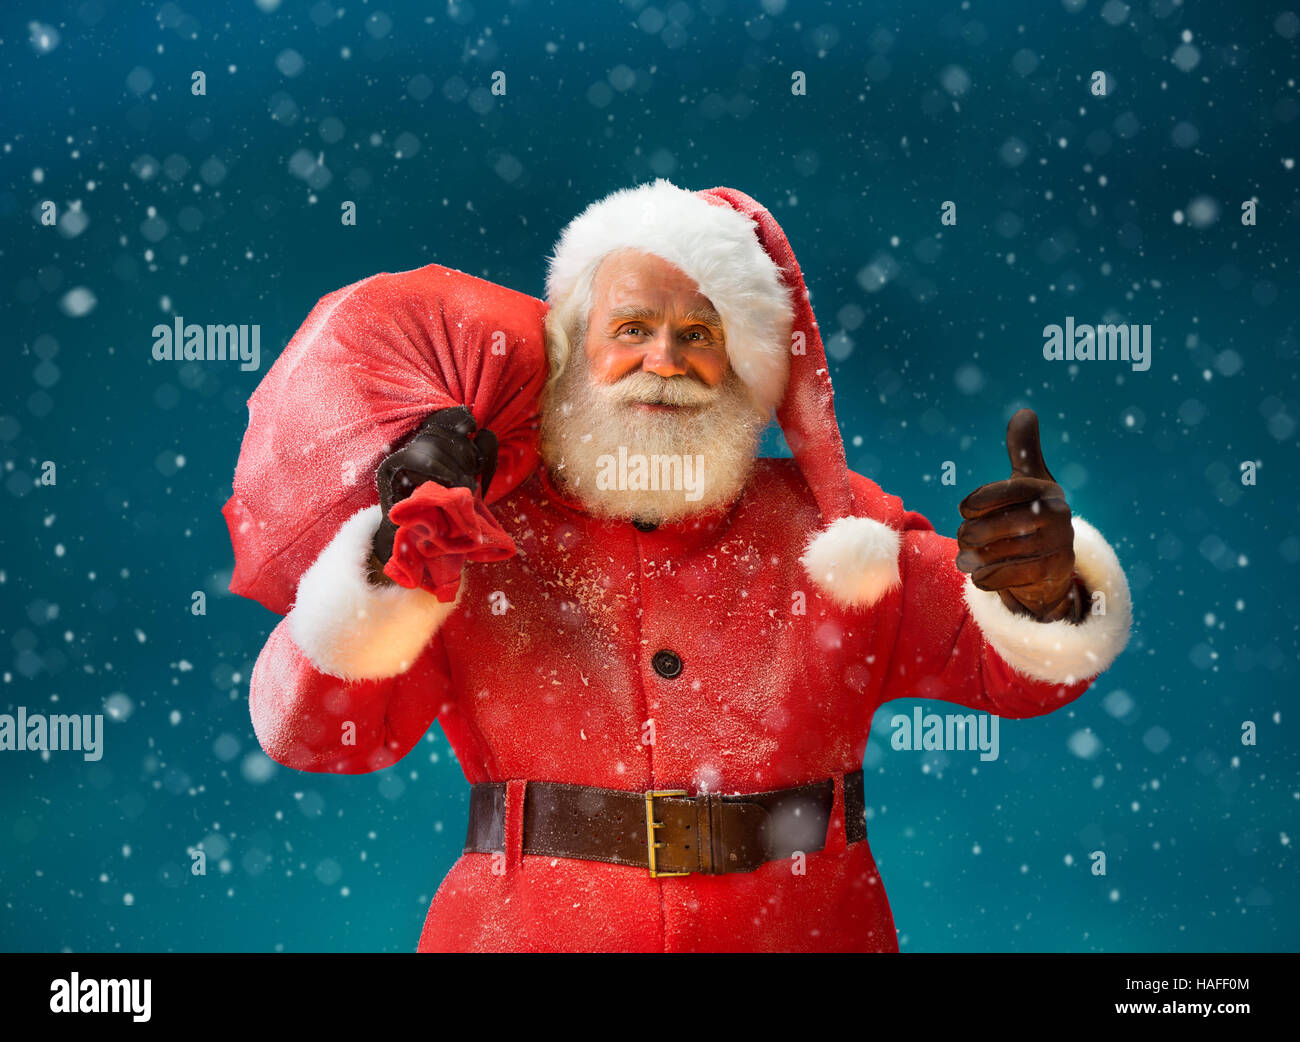 3148bf64cf0fd Happy Santa Claus gesturing thumb up with big bag full of gifts to  children. Merry Christmas   New Year s Eve concept.